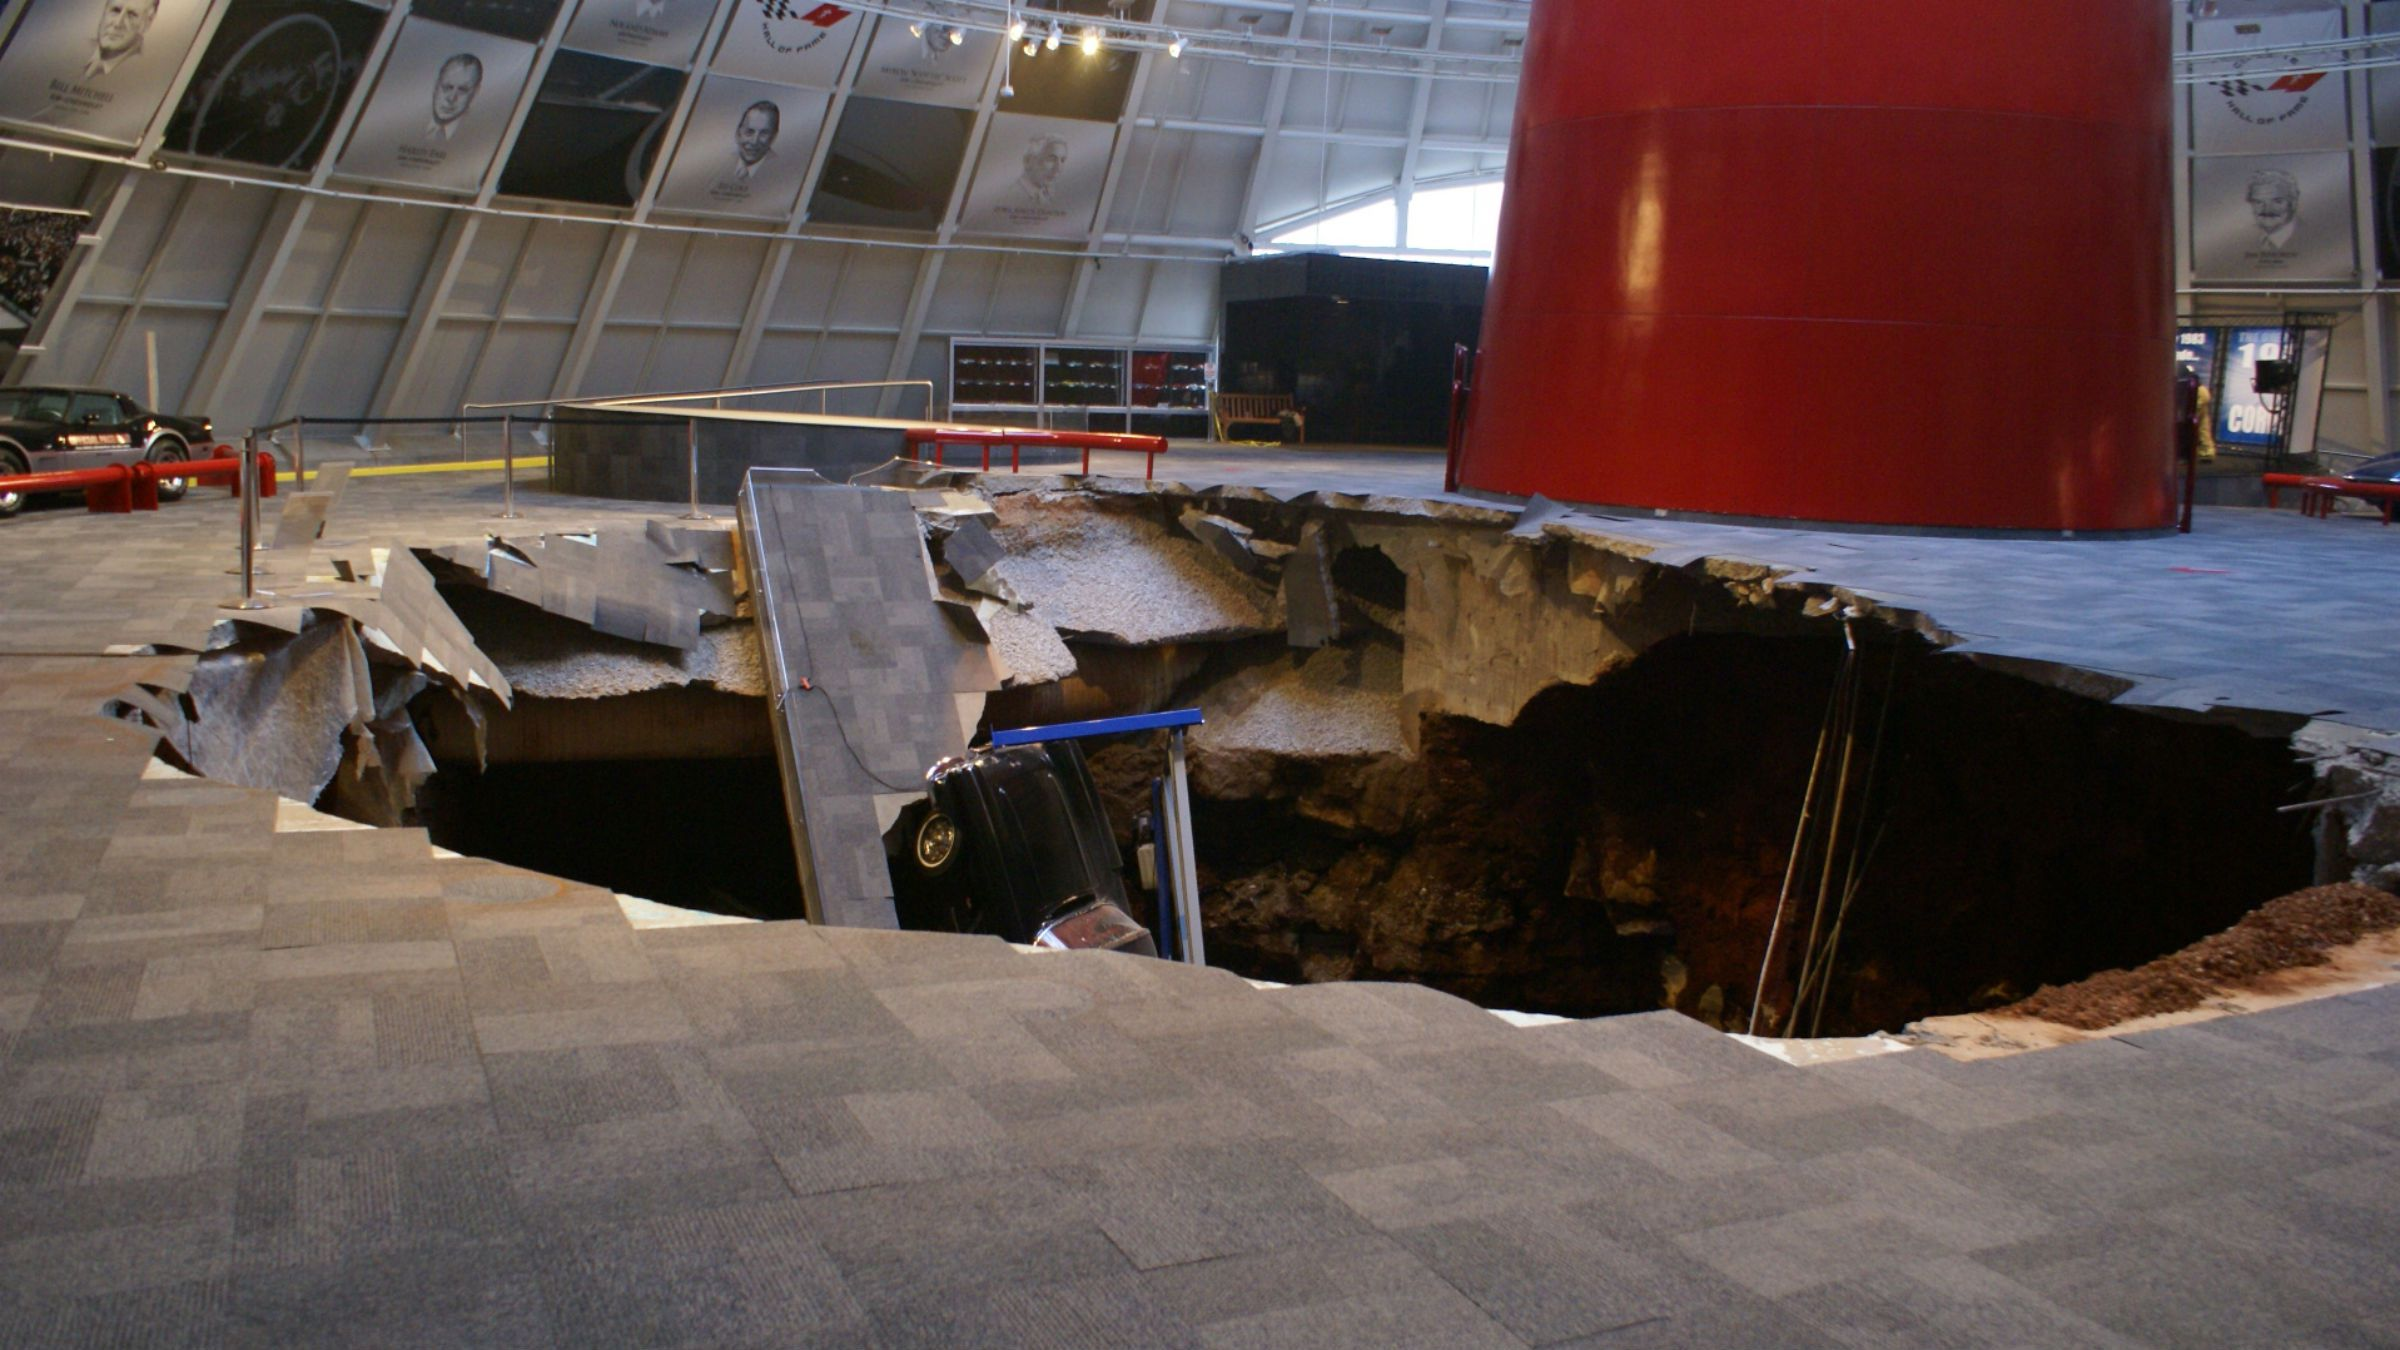 National Corvette Museum Skydome Sinkhole. 1962 Black Corvette can be seen in the sinkhole.